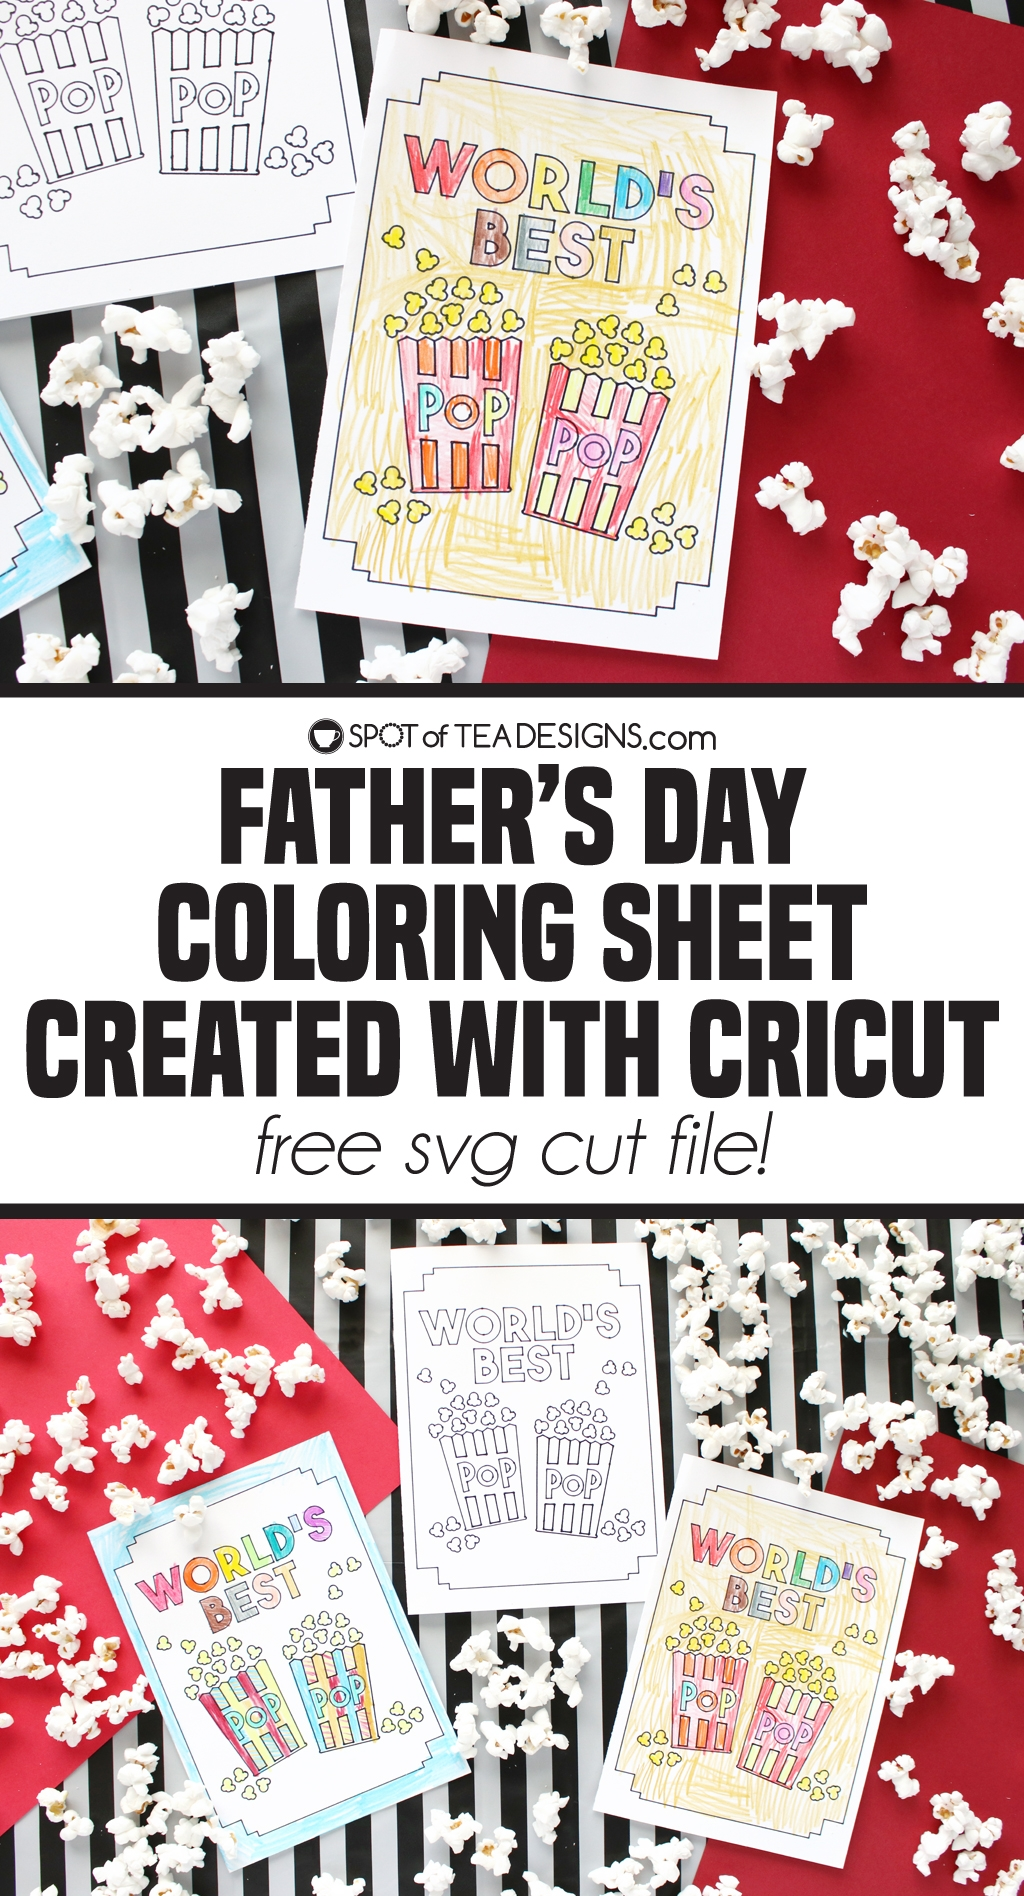 Father's Day Coloring Sheet created with Cricut - Free svg cut file and tutorial   spotofteadesigns.com